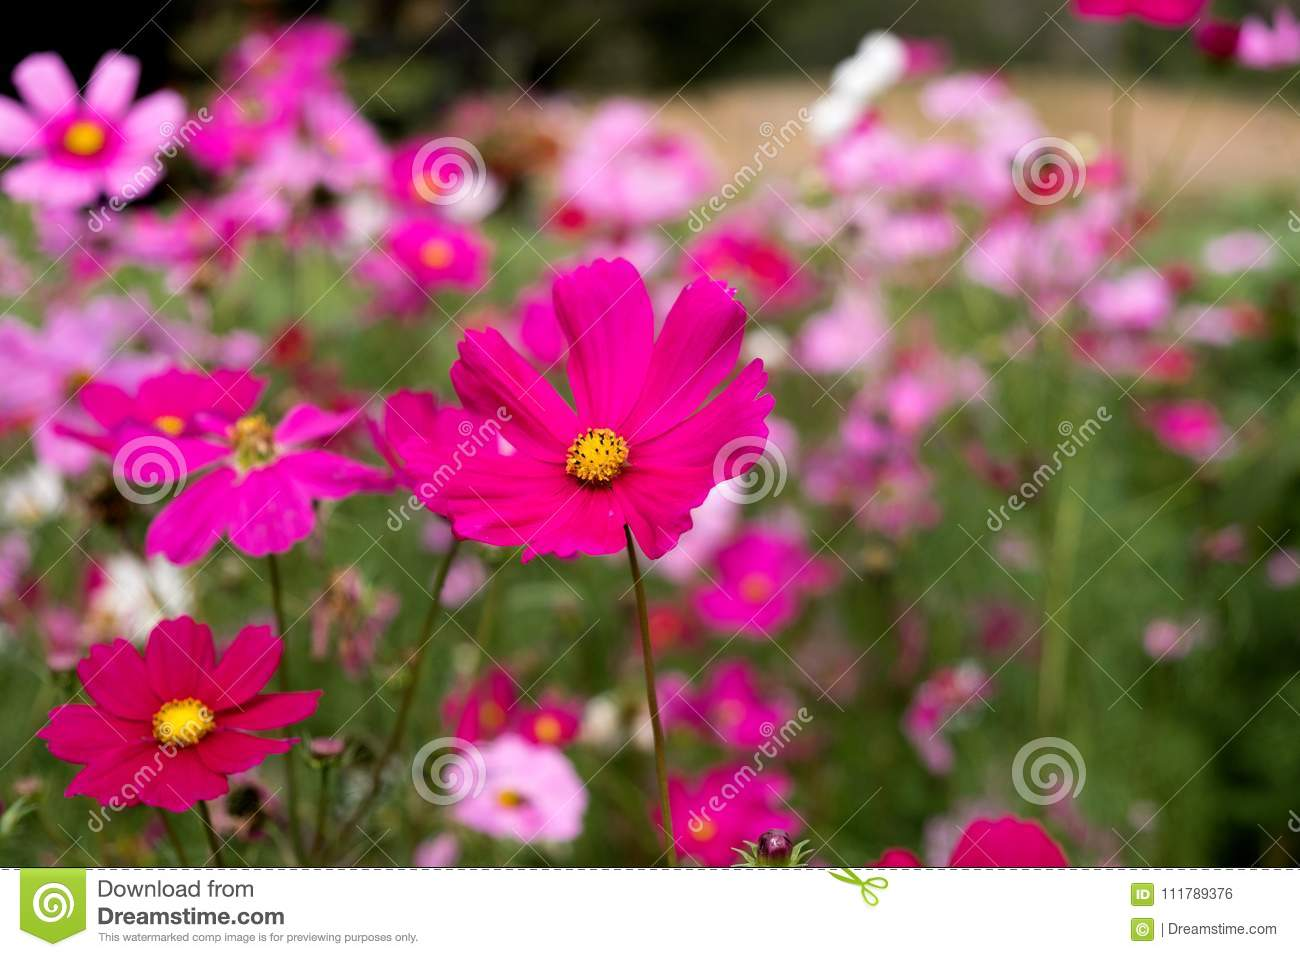 Cosmos flower in thailand stock photo image of simple 111789376 cosmos flower in thailand izmirmasajfo Gallery